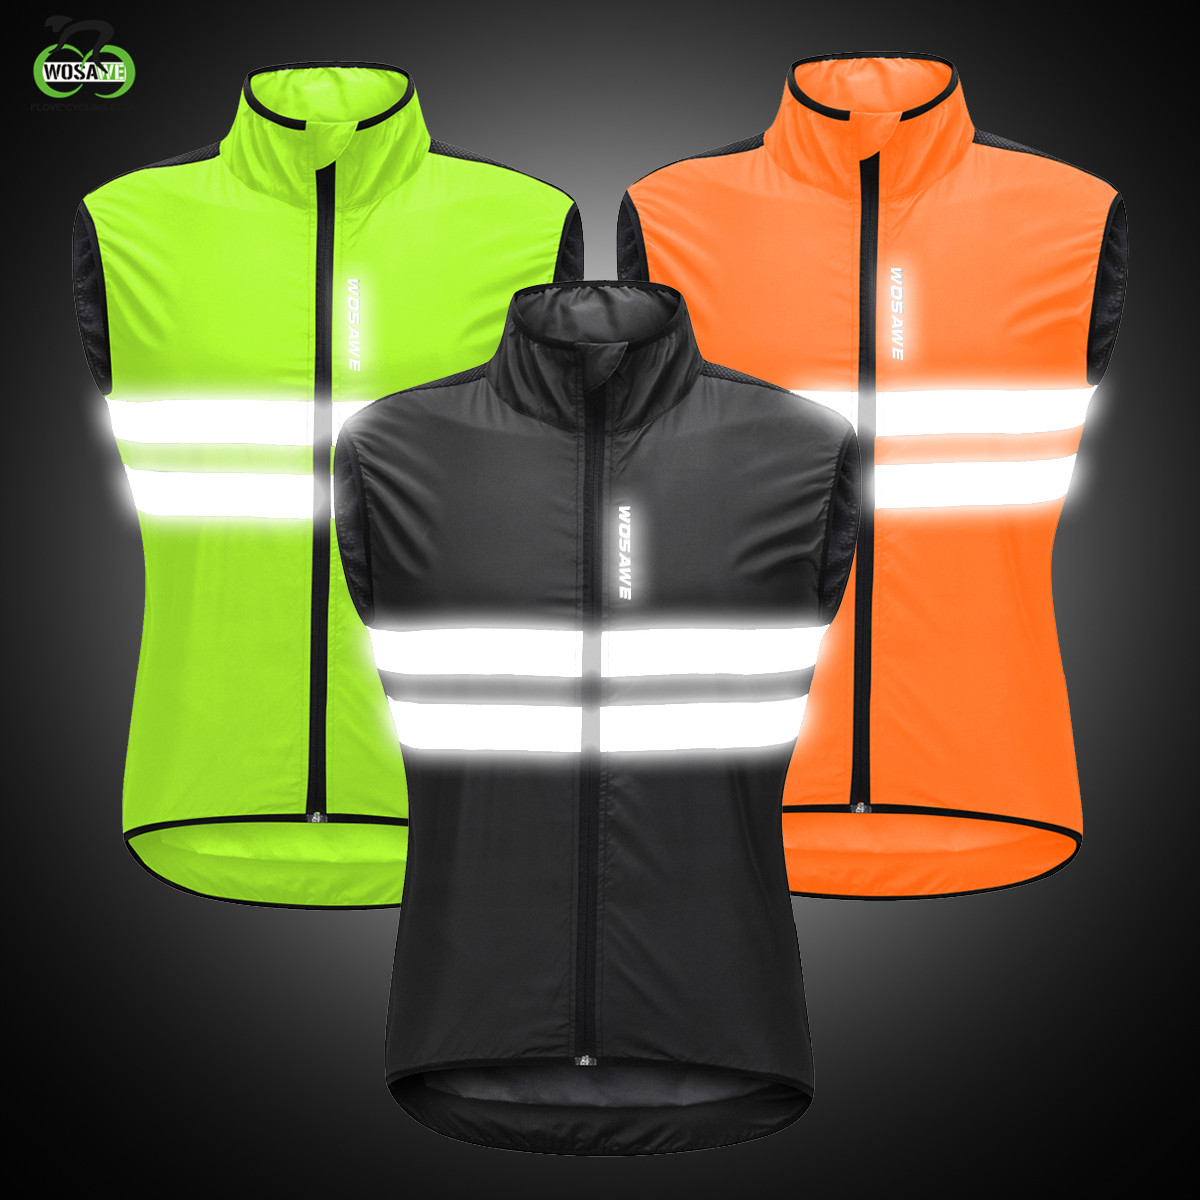 WOSAWE High Visibility Cycling Vest Reflective MTB Sleeveless Windproof Windbreaker Bike Bicycle Jersey Safety Vest Wind Coat